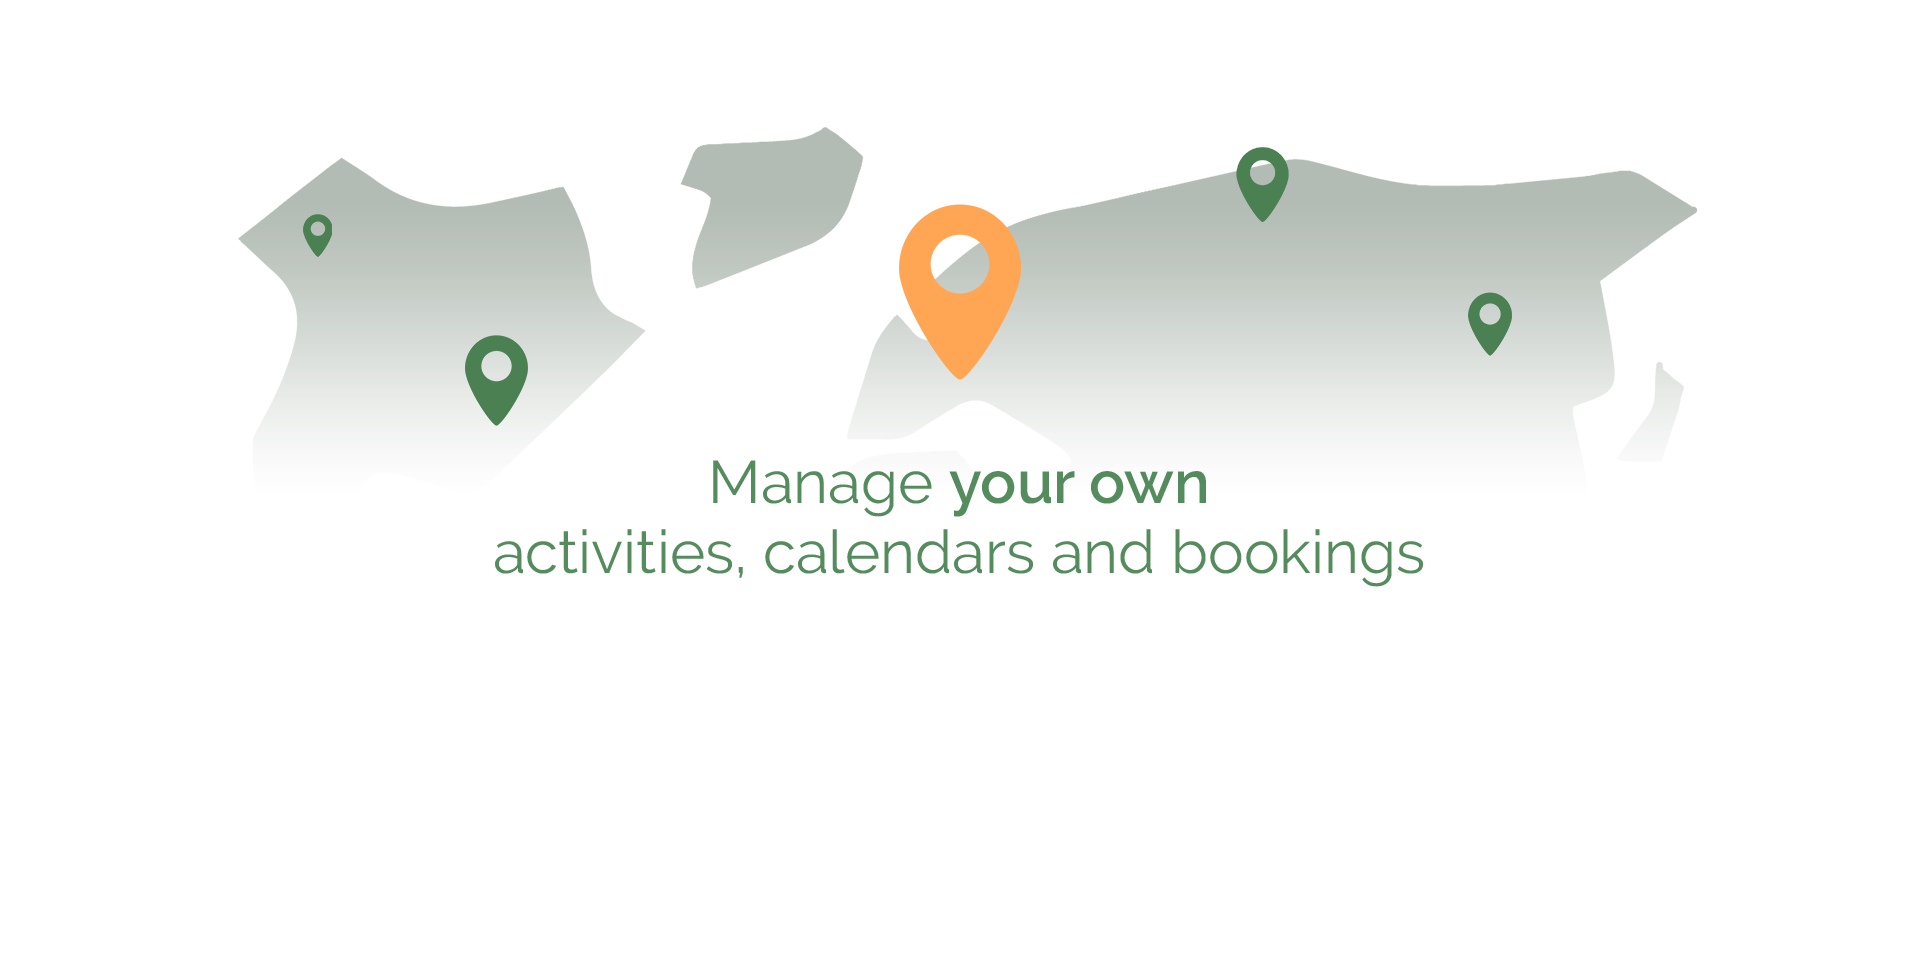 Points of Sale - Booking Activities